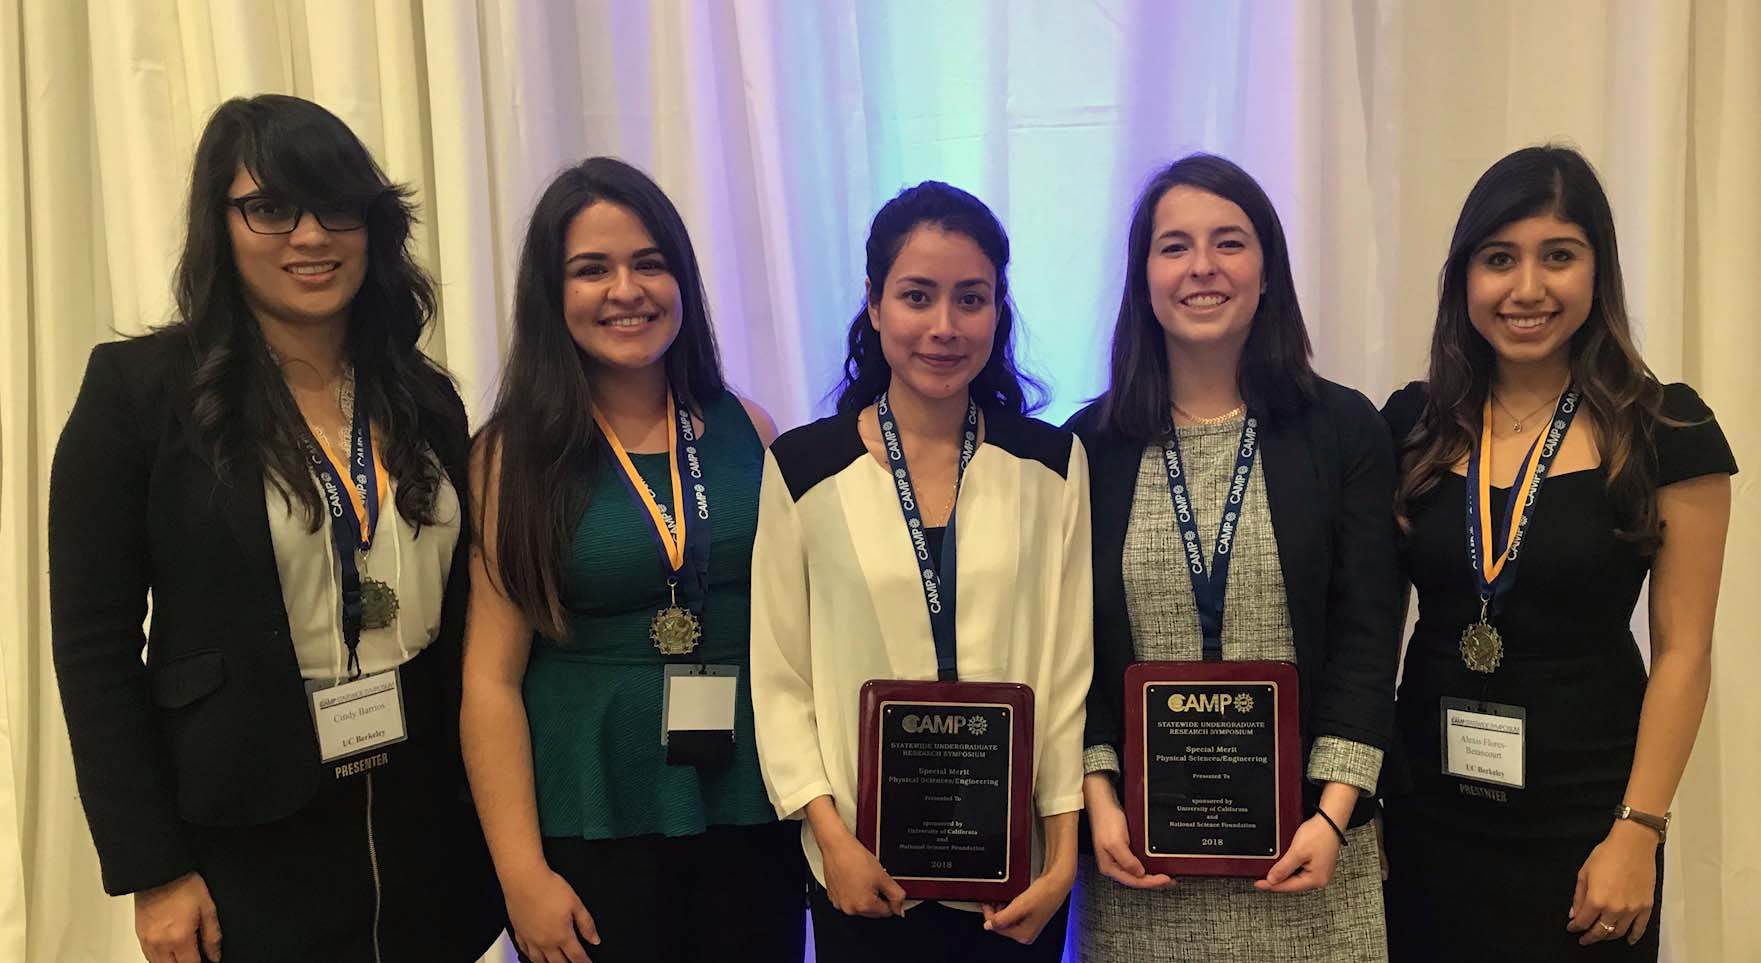 NSF UC Statewide Research Poster Winners: Cindy, Arcelia, Arismel, Julia, & Alexis